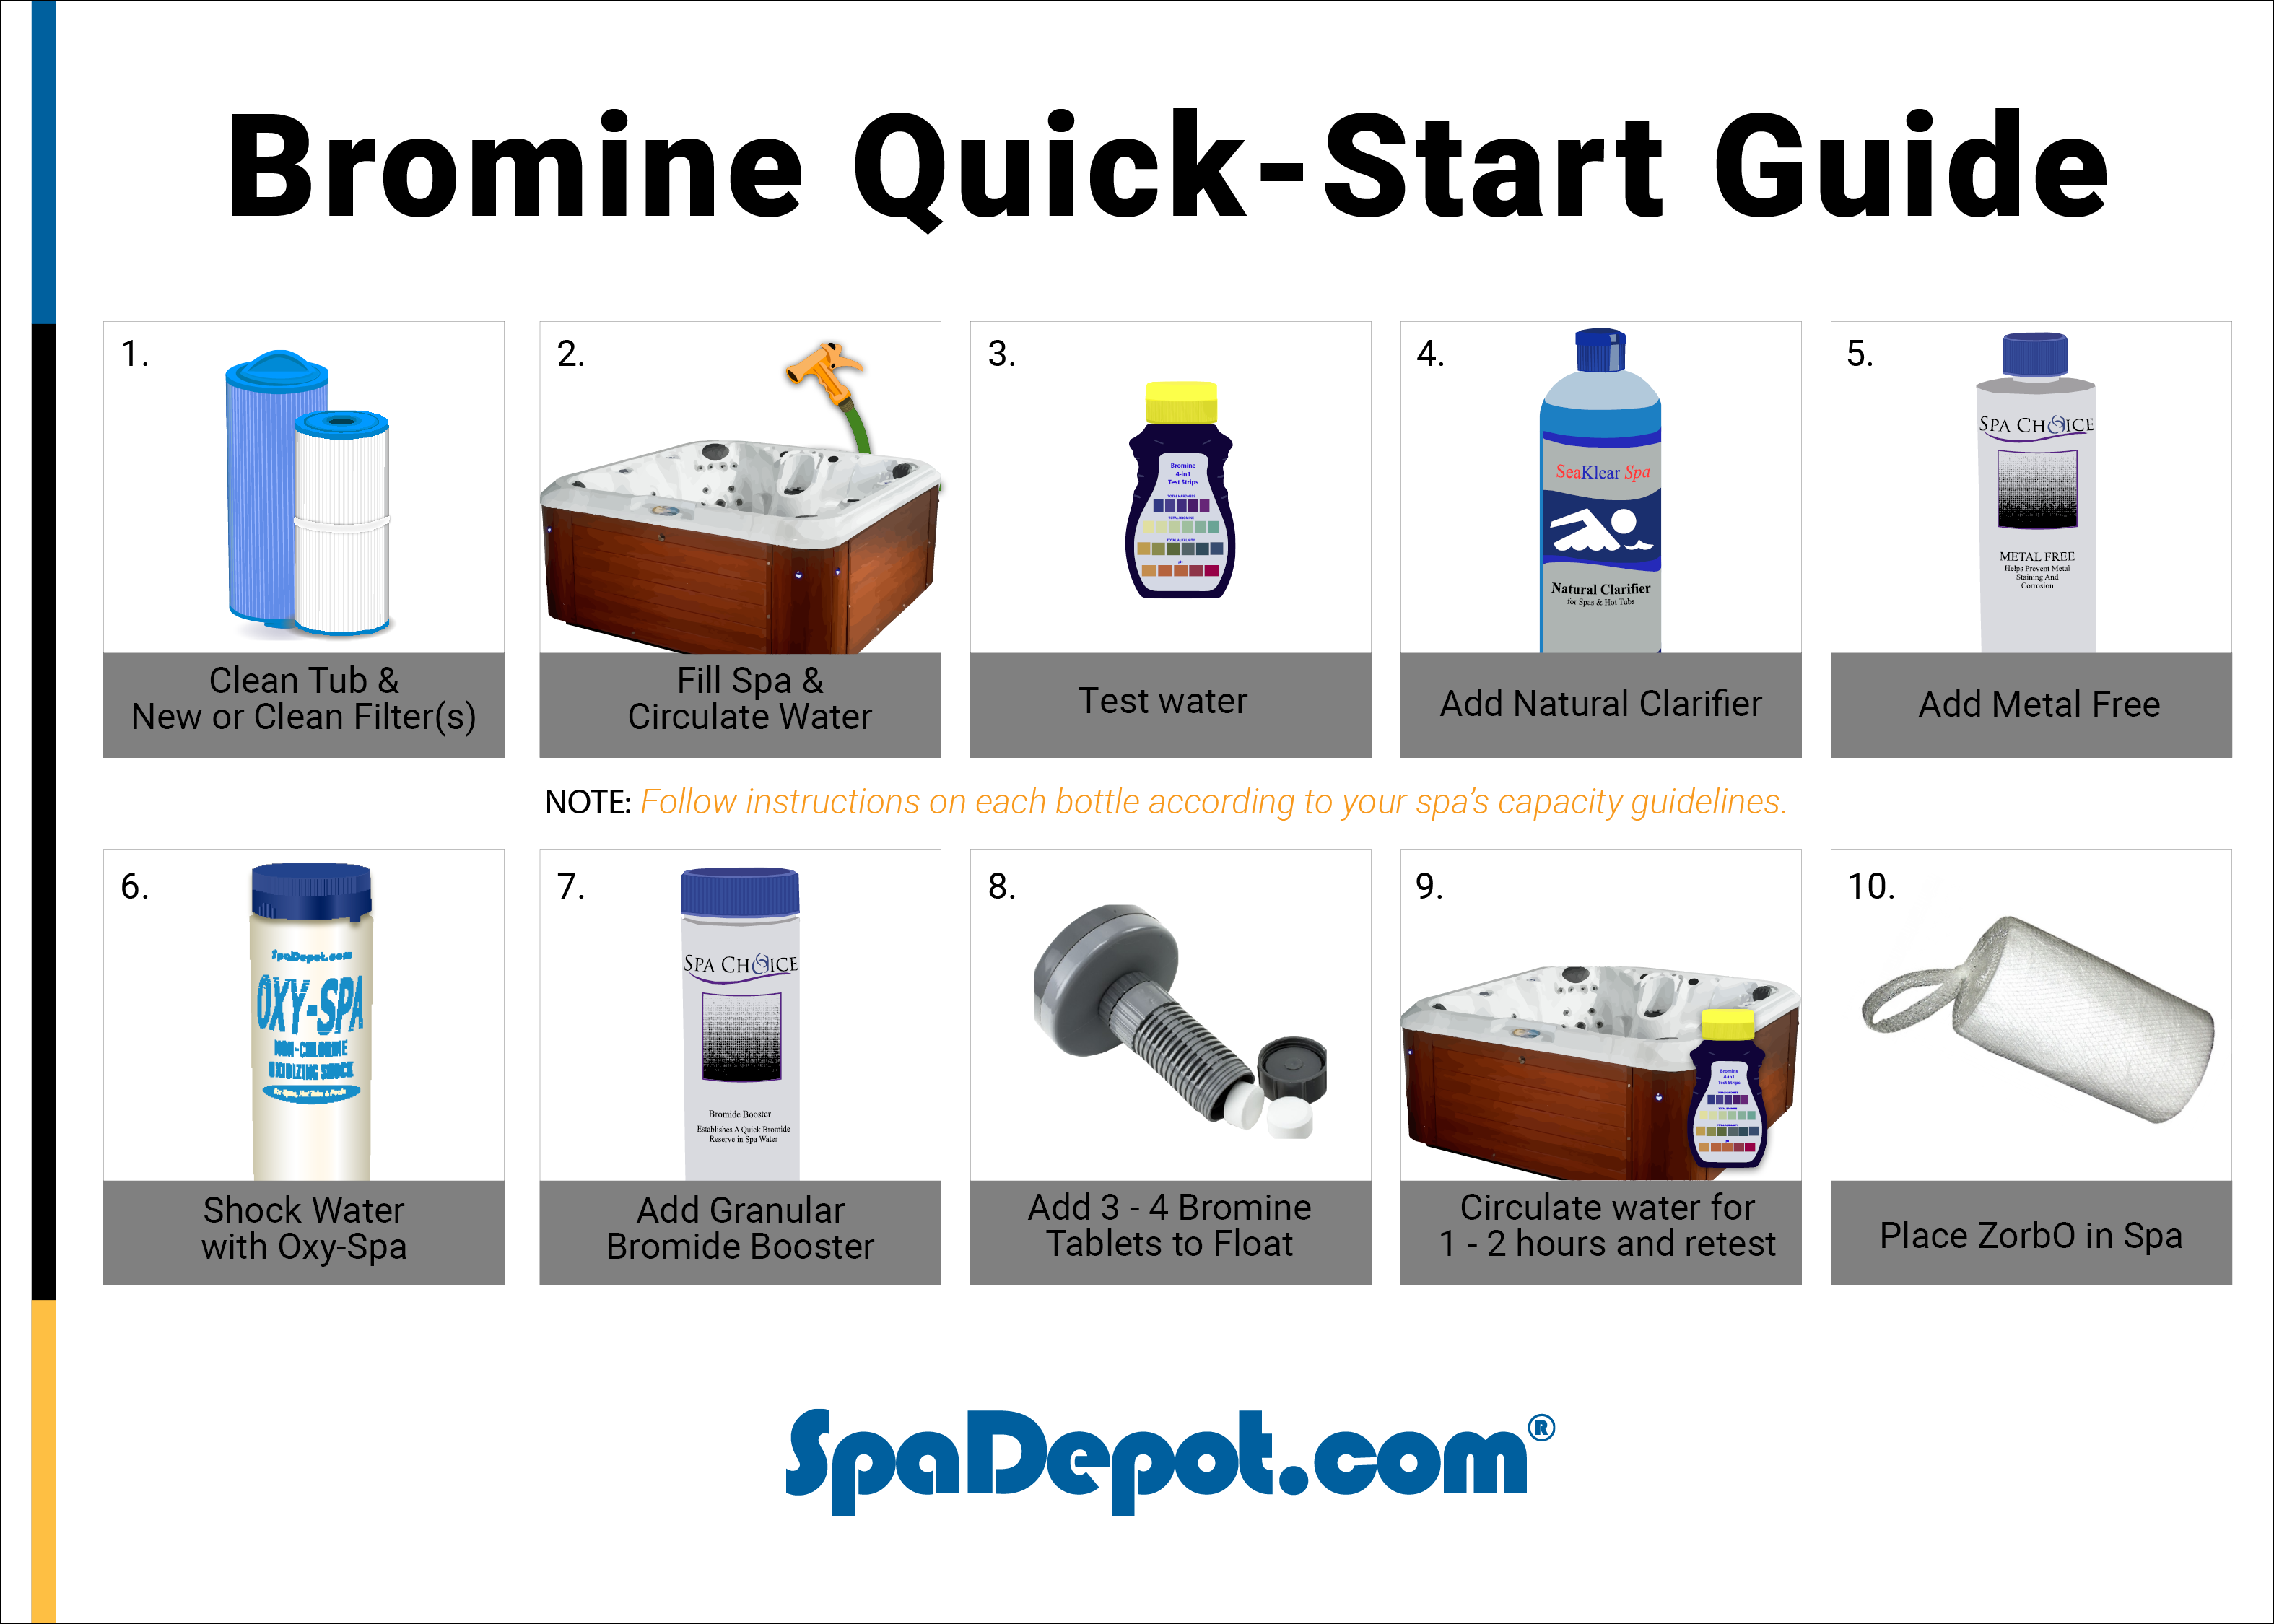 Bromine Quick-Start Guide - Revised